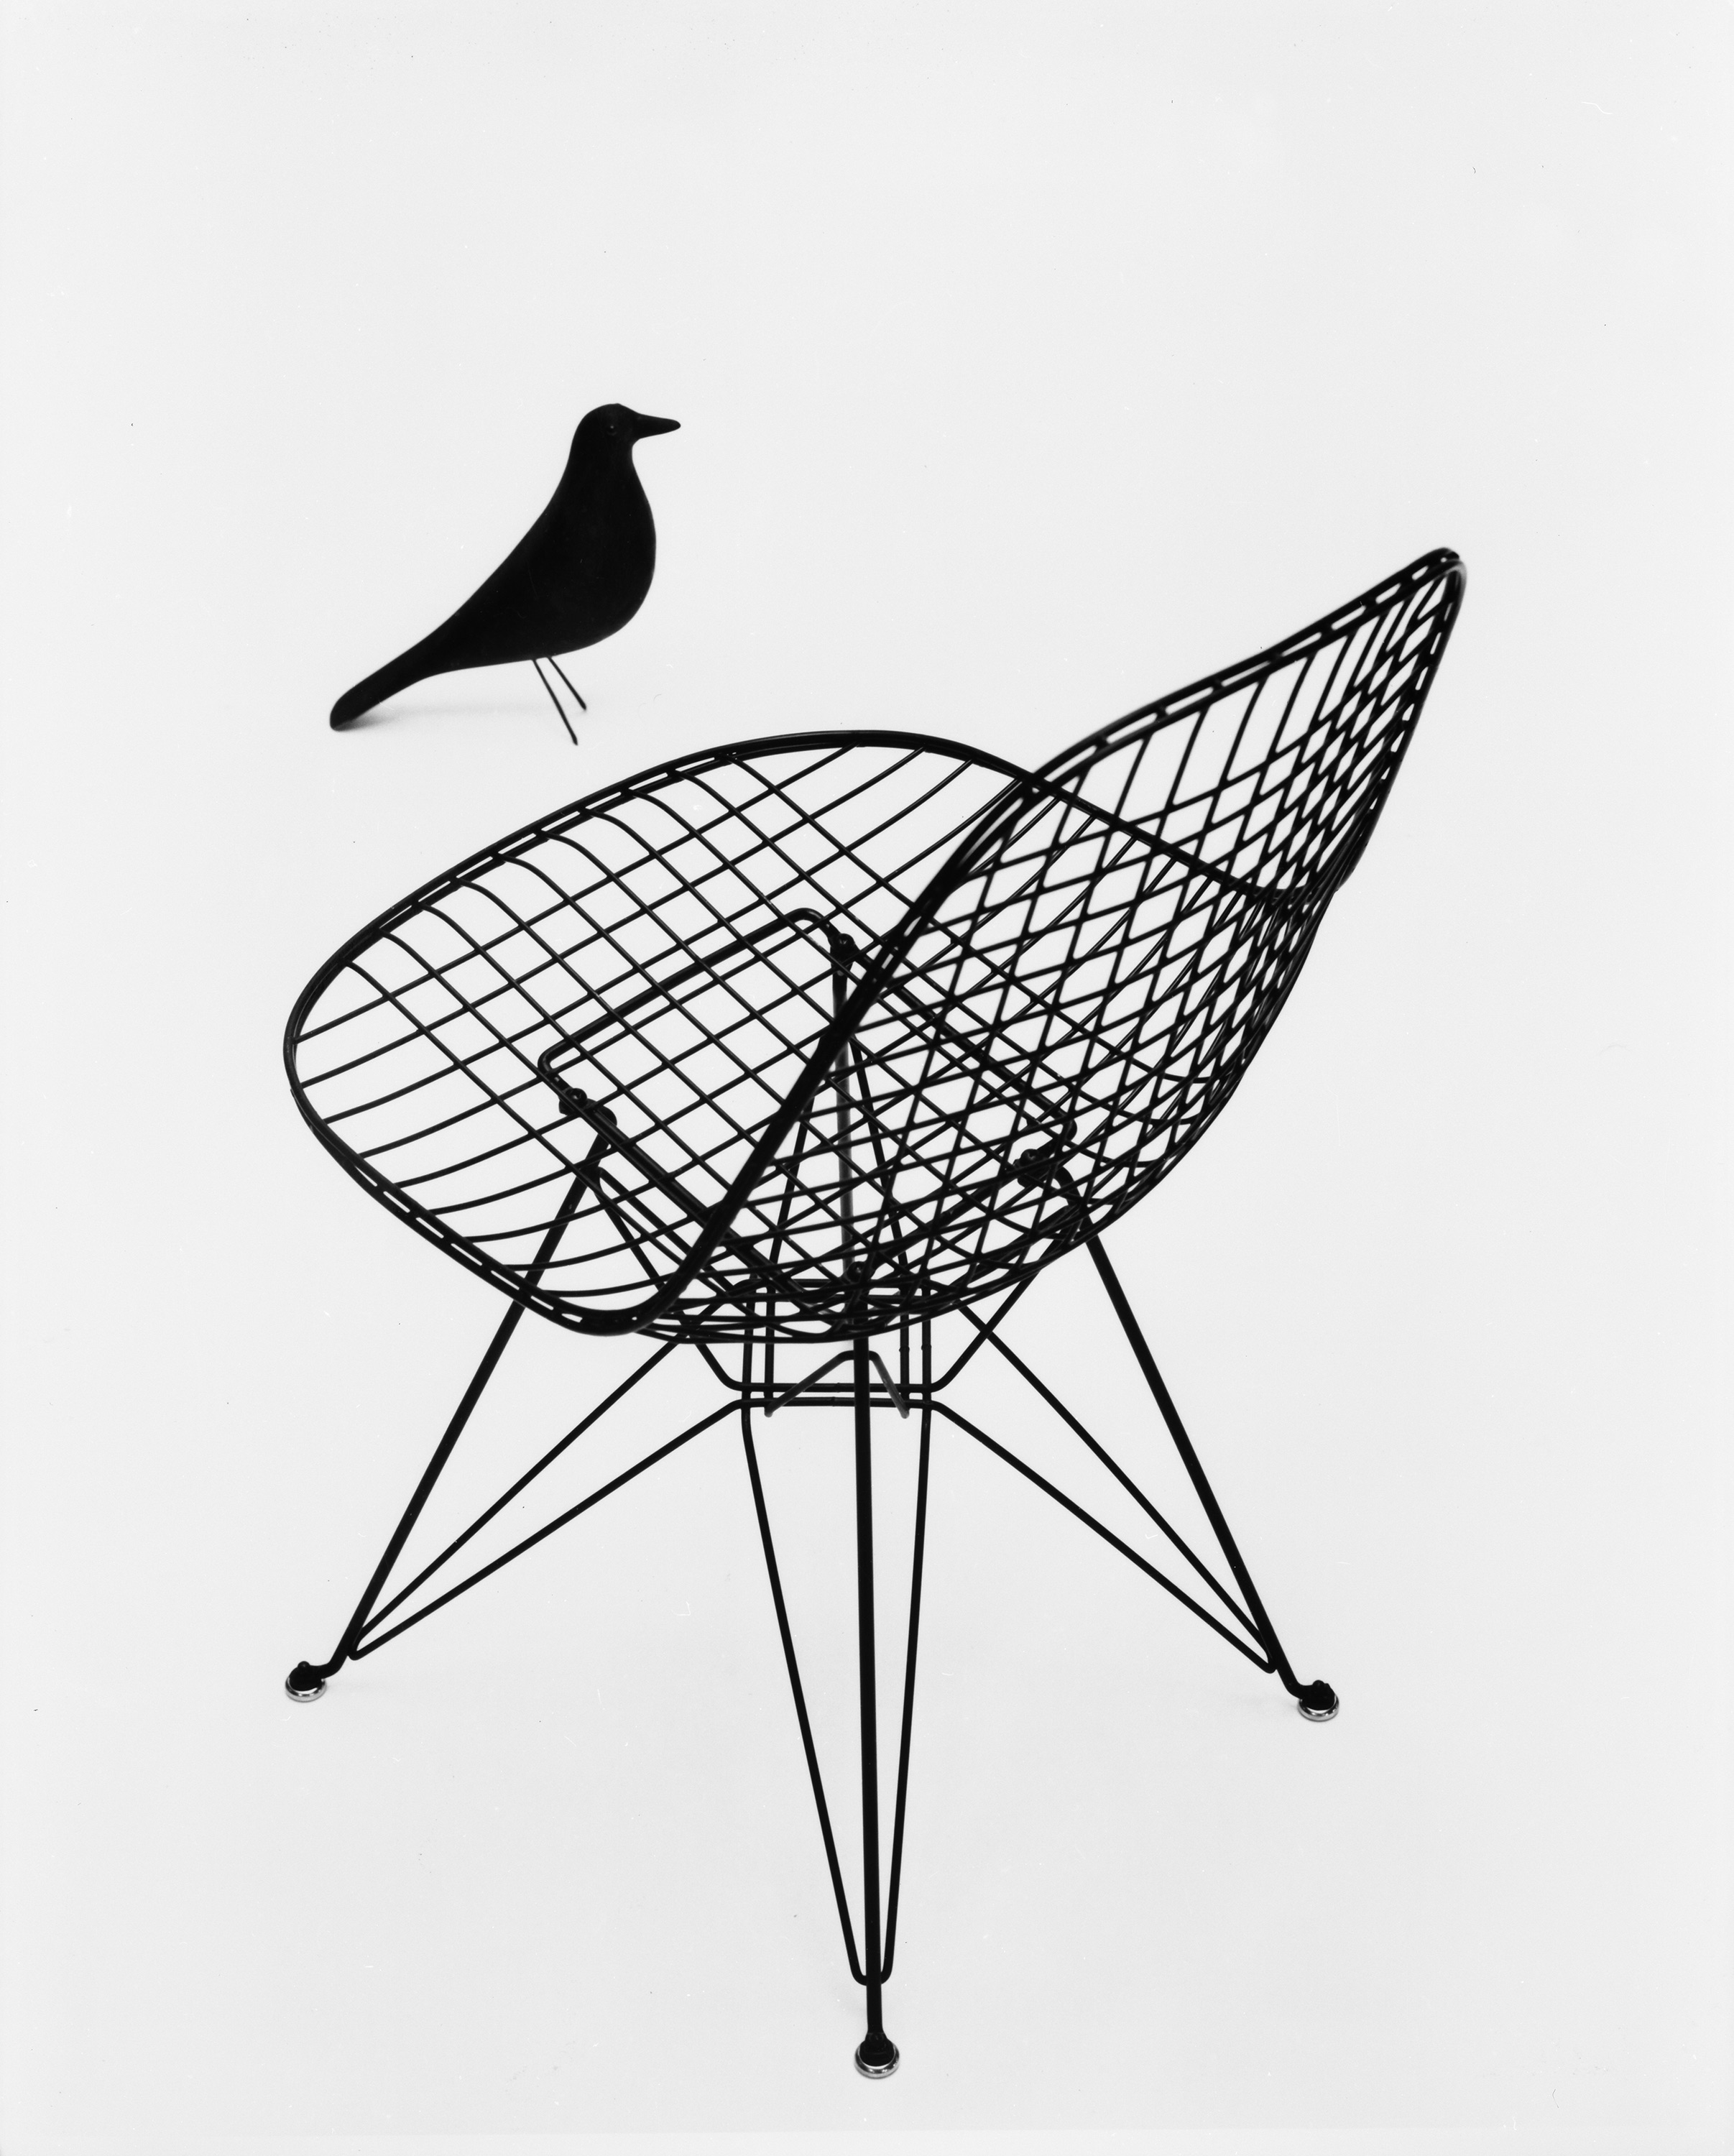 Work & Play The Eames Approach — An Exciting New Exhibit at